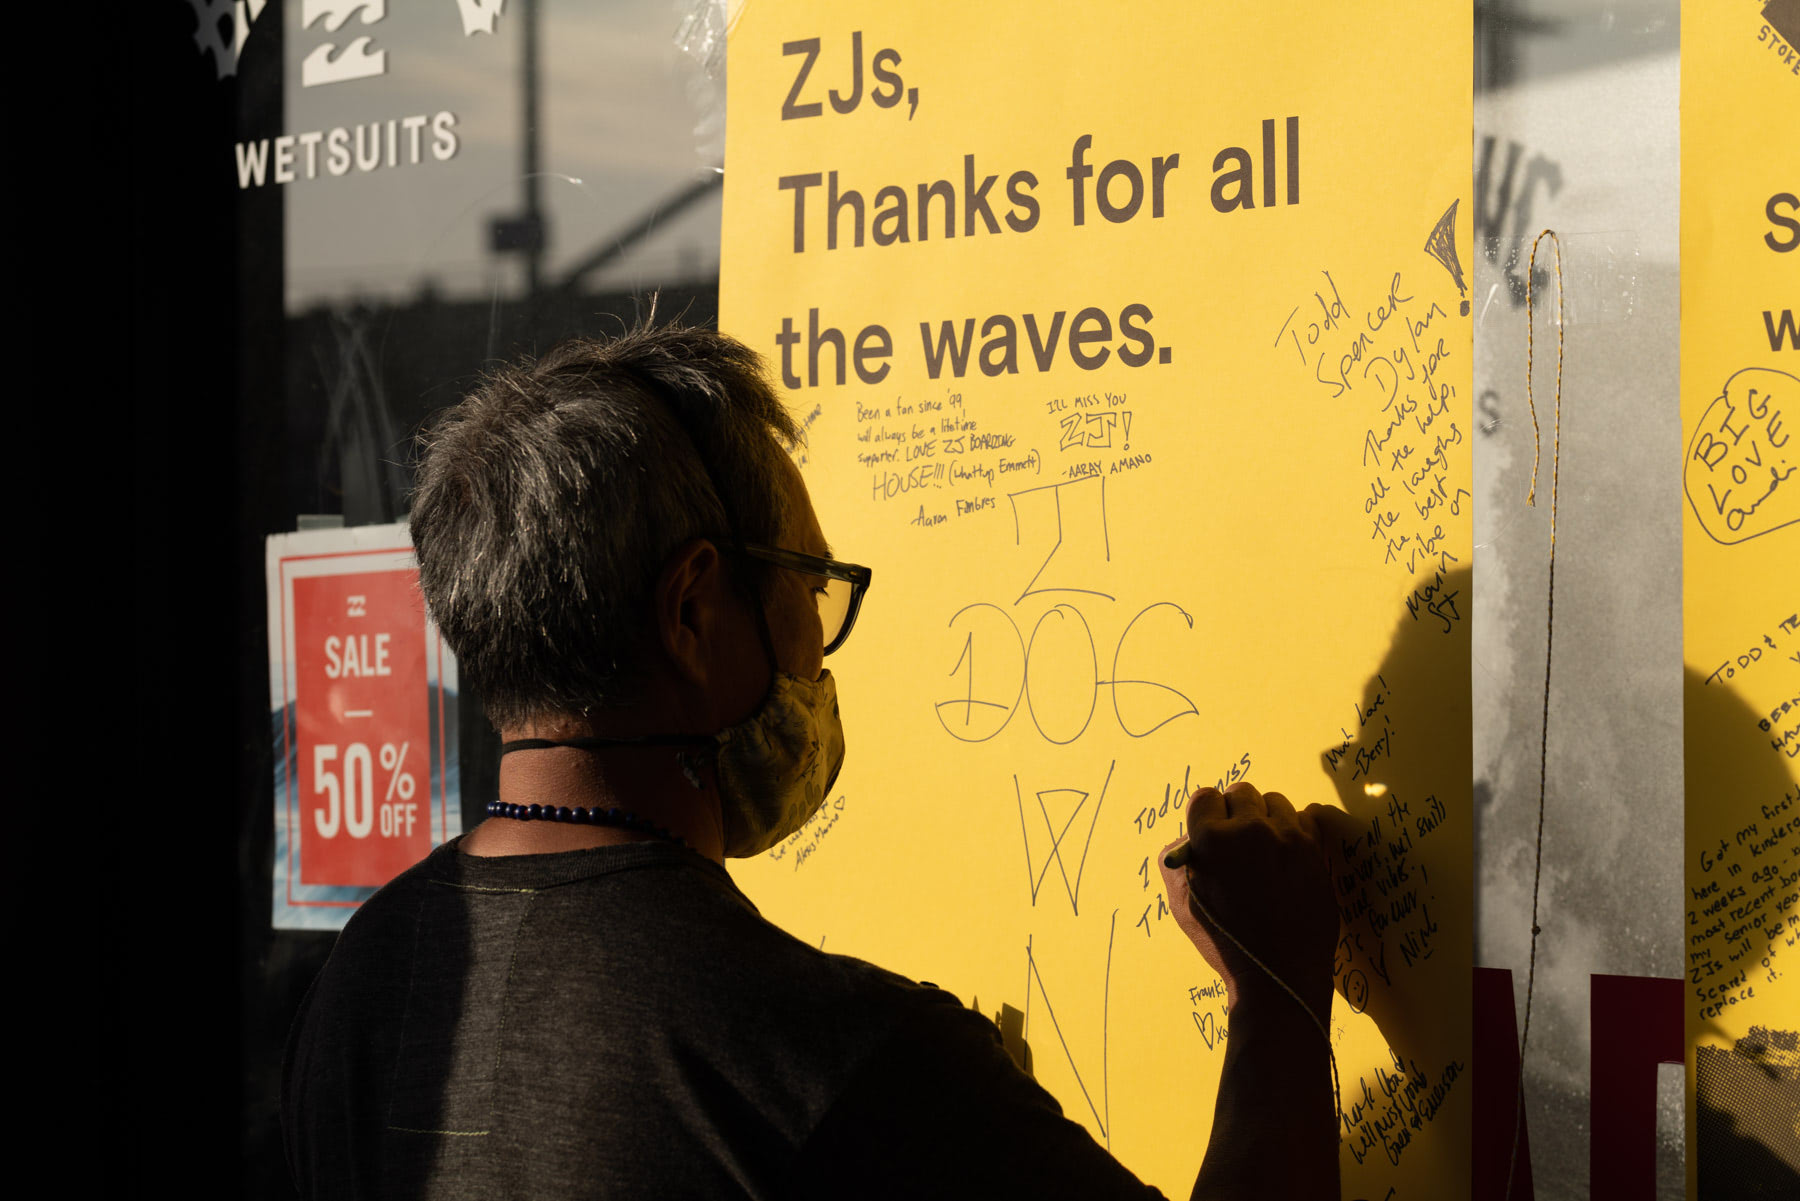 ZJs thanks for all the waves